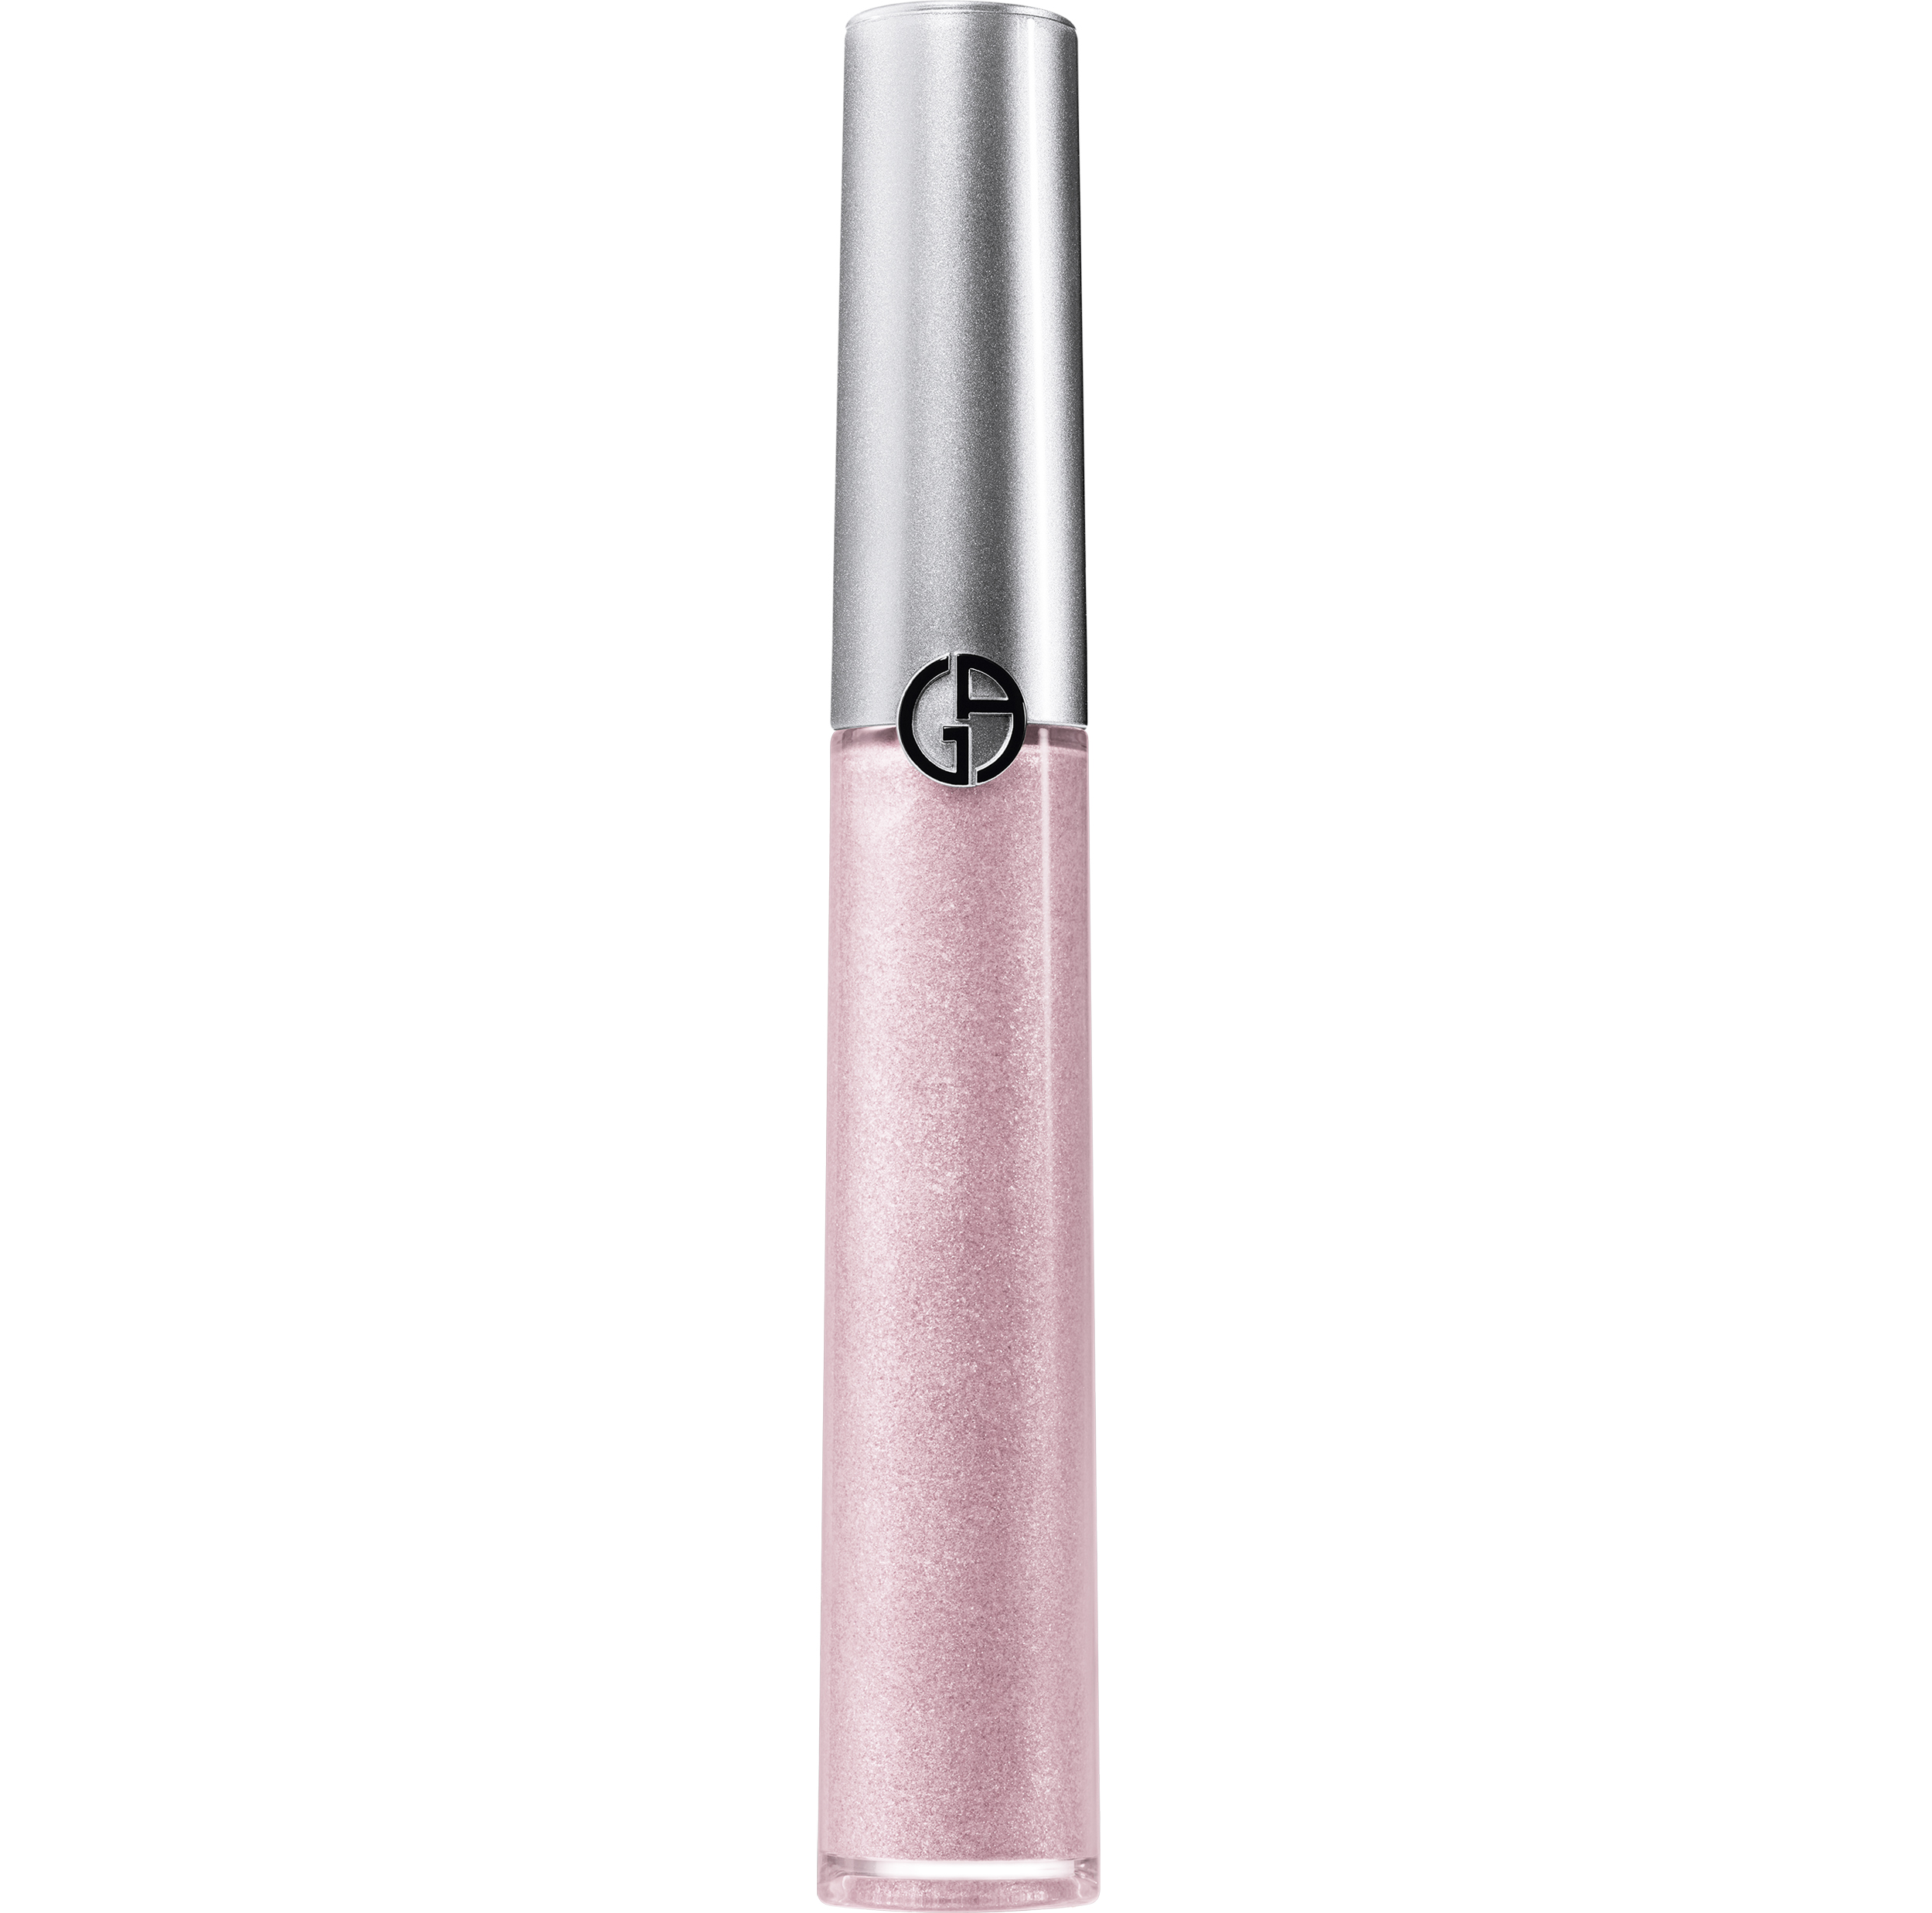 Giorgio Armani Beauty Limited Edition Tokyo Gardens Eye Tint Acqua Rose Reflexion